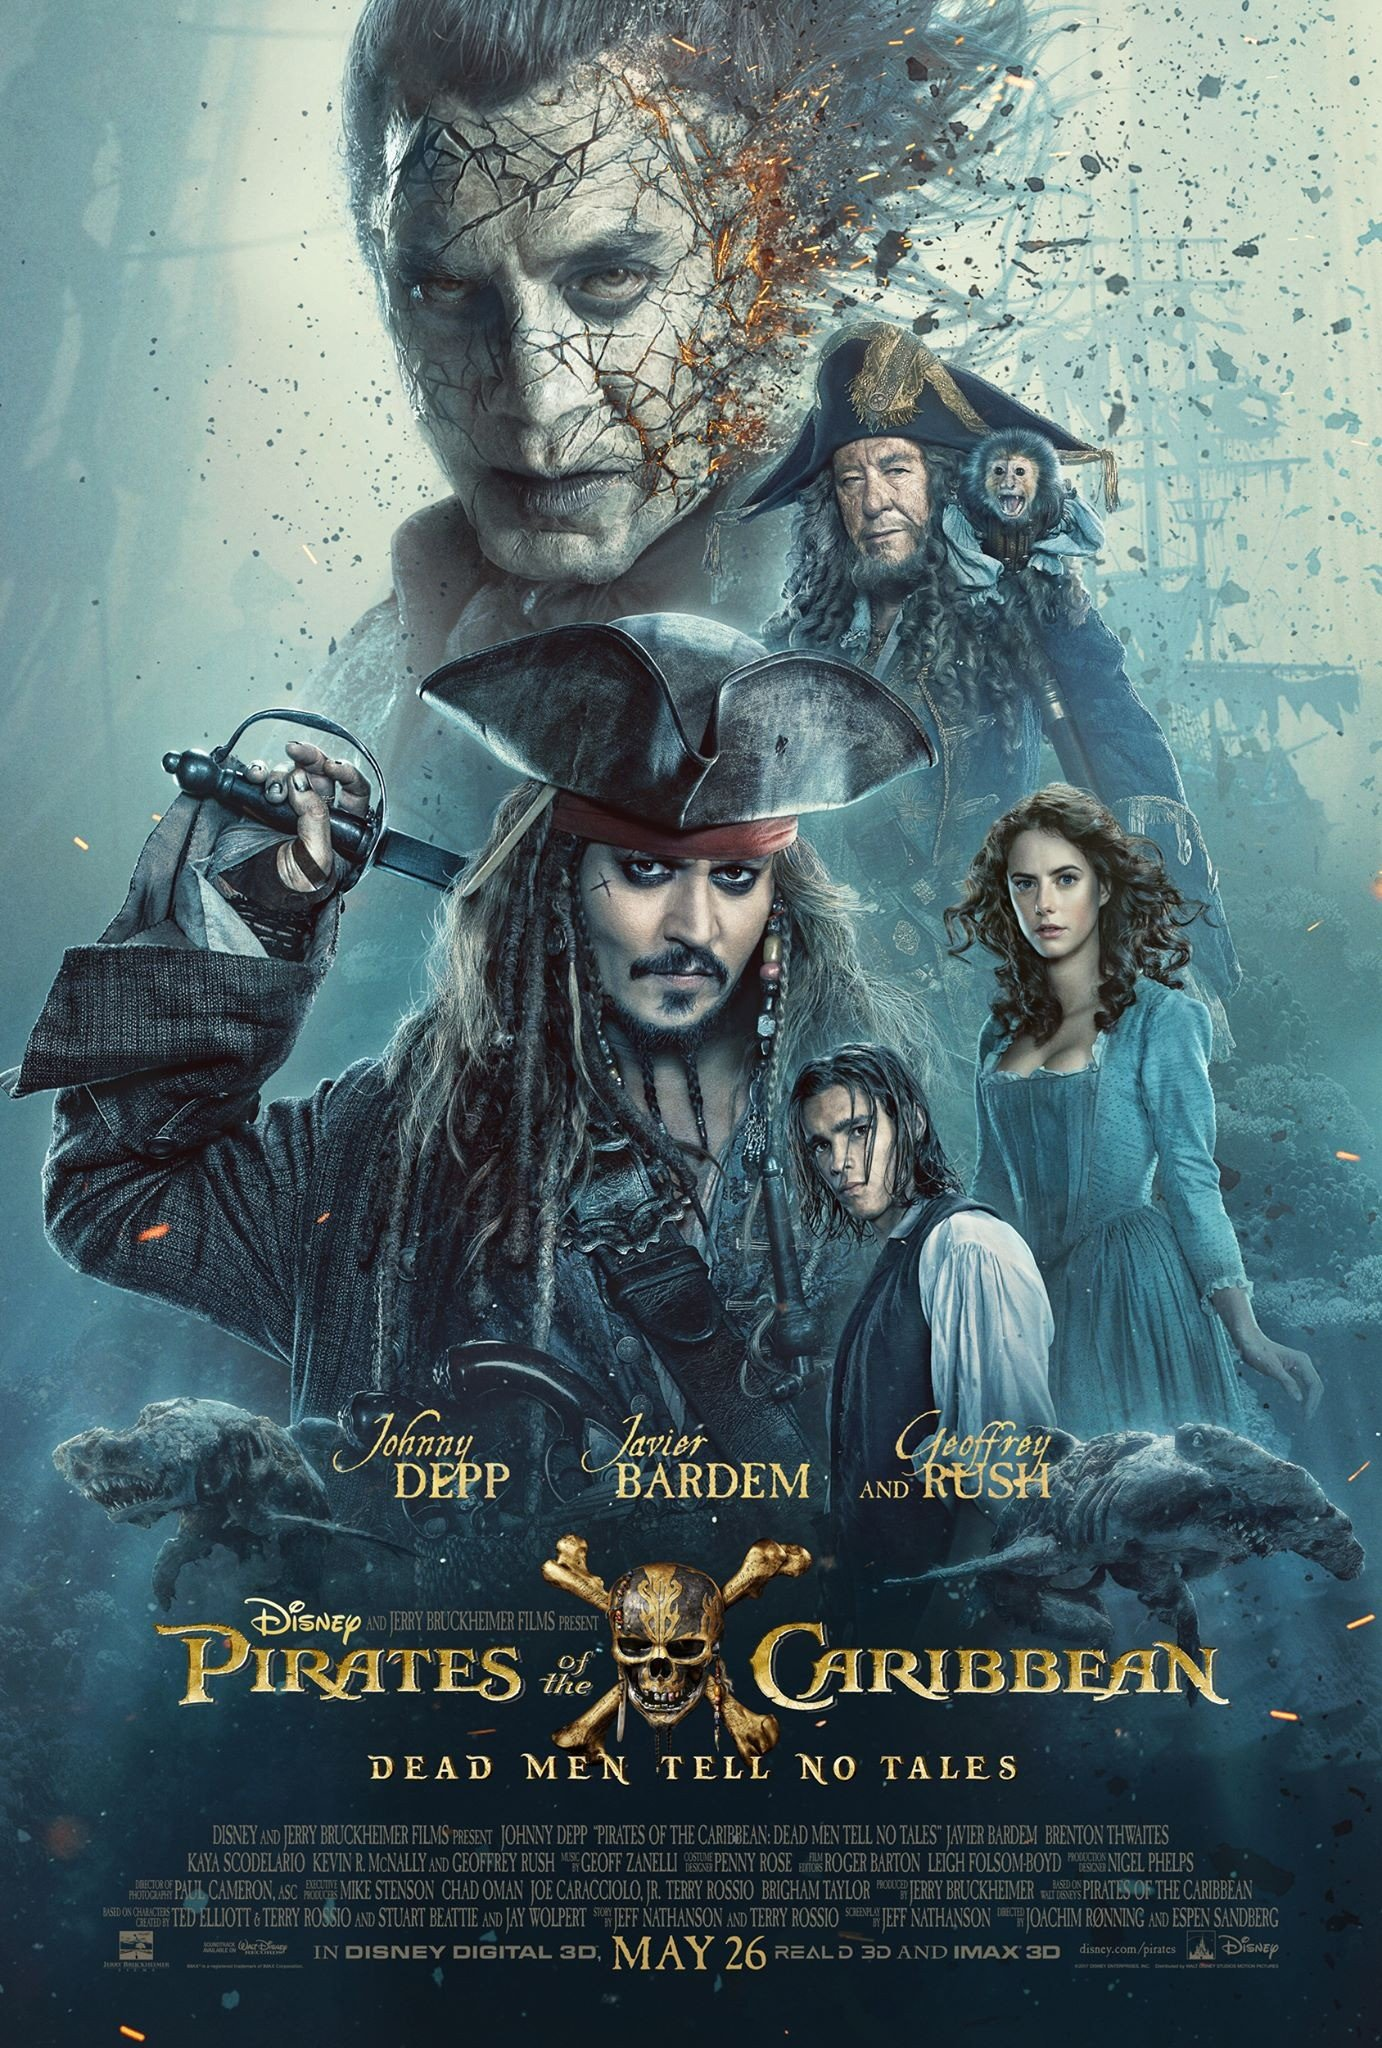 Pirates of the Caribbean: Dead Men Tell No Tales 加勒比海盗5:死无对证